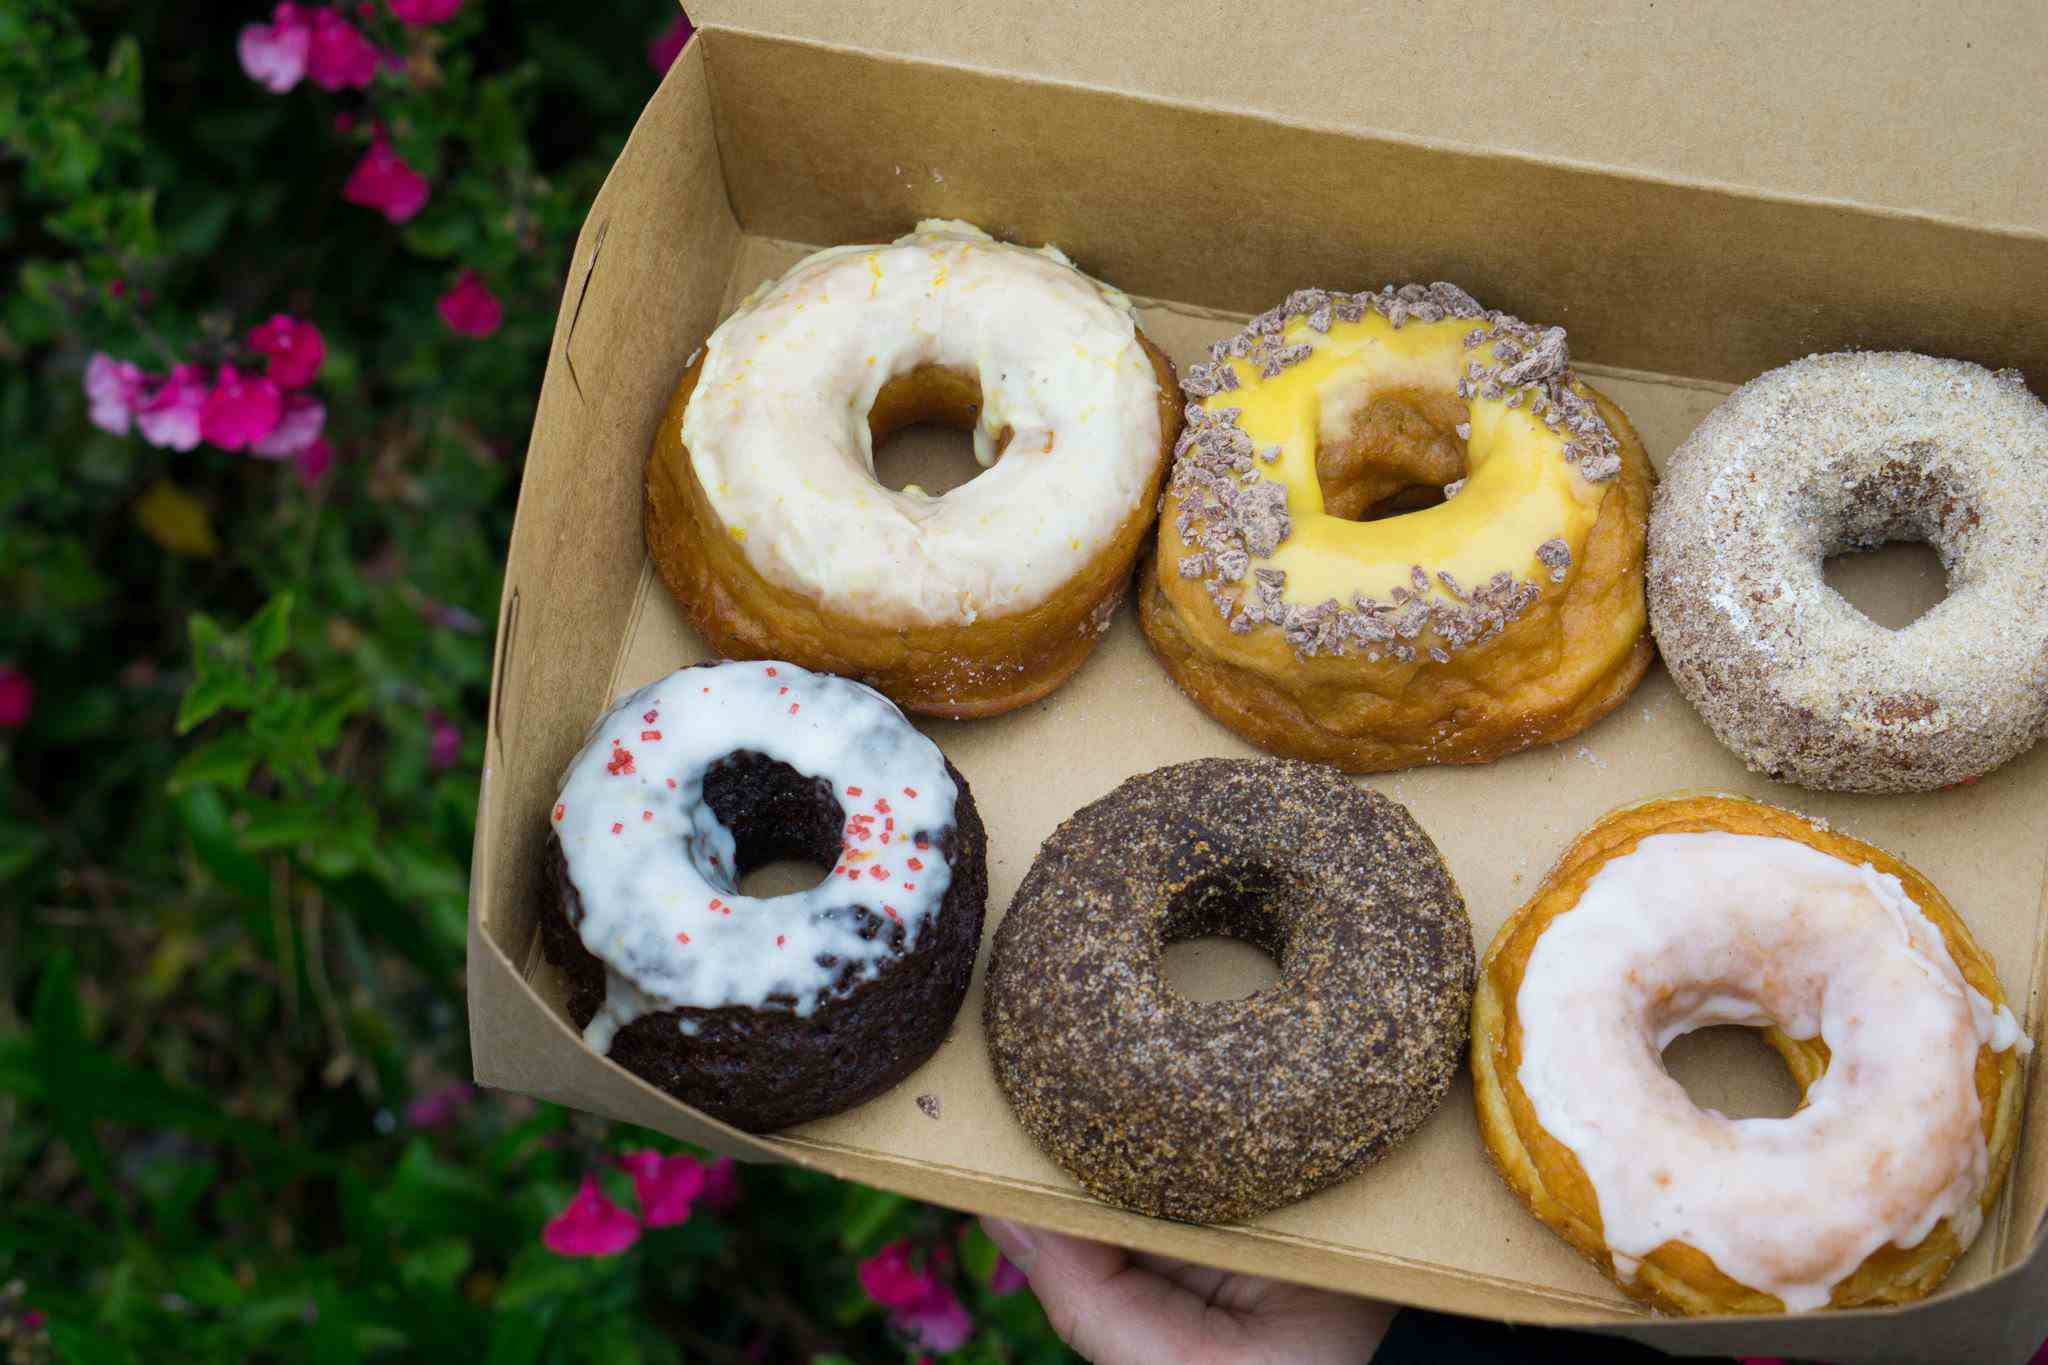 box of six donuts from Dynamo Donut + Coffee in San Francisco